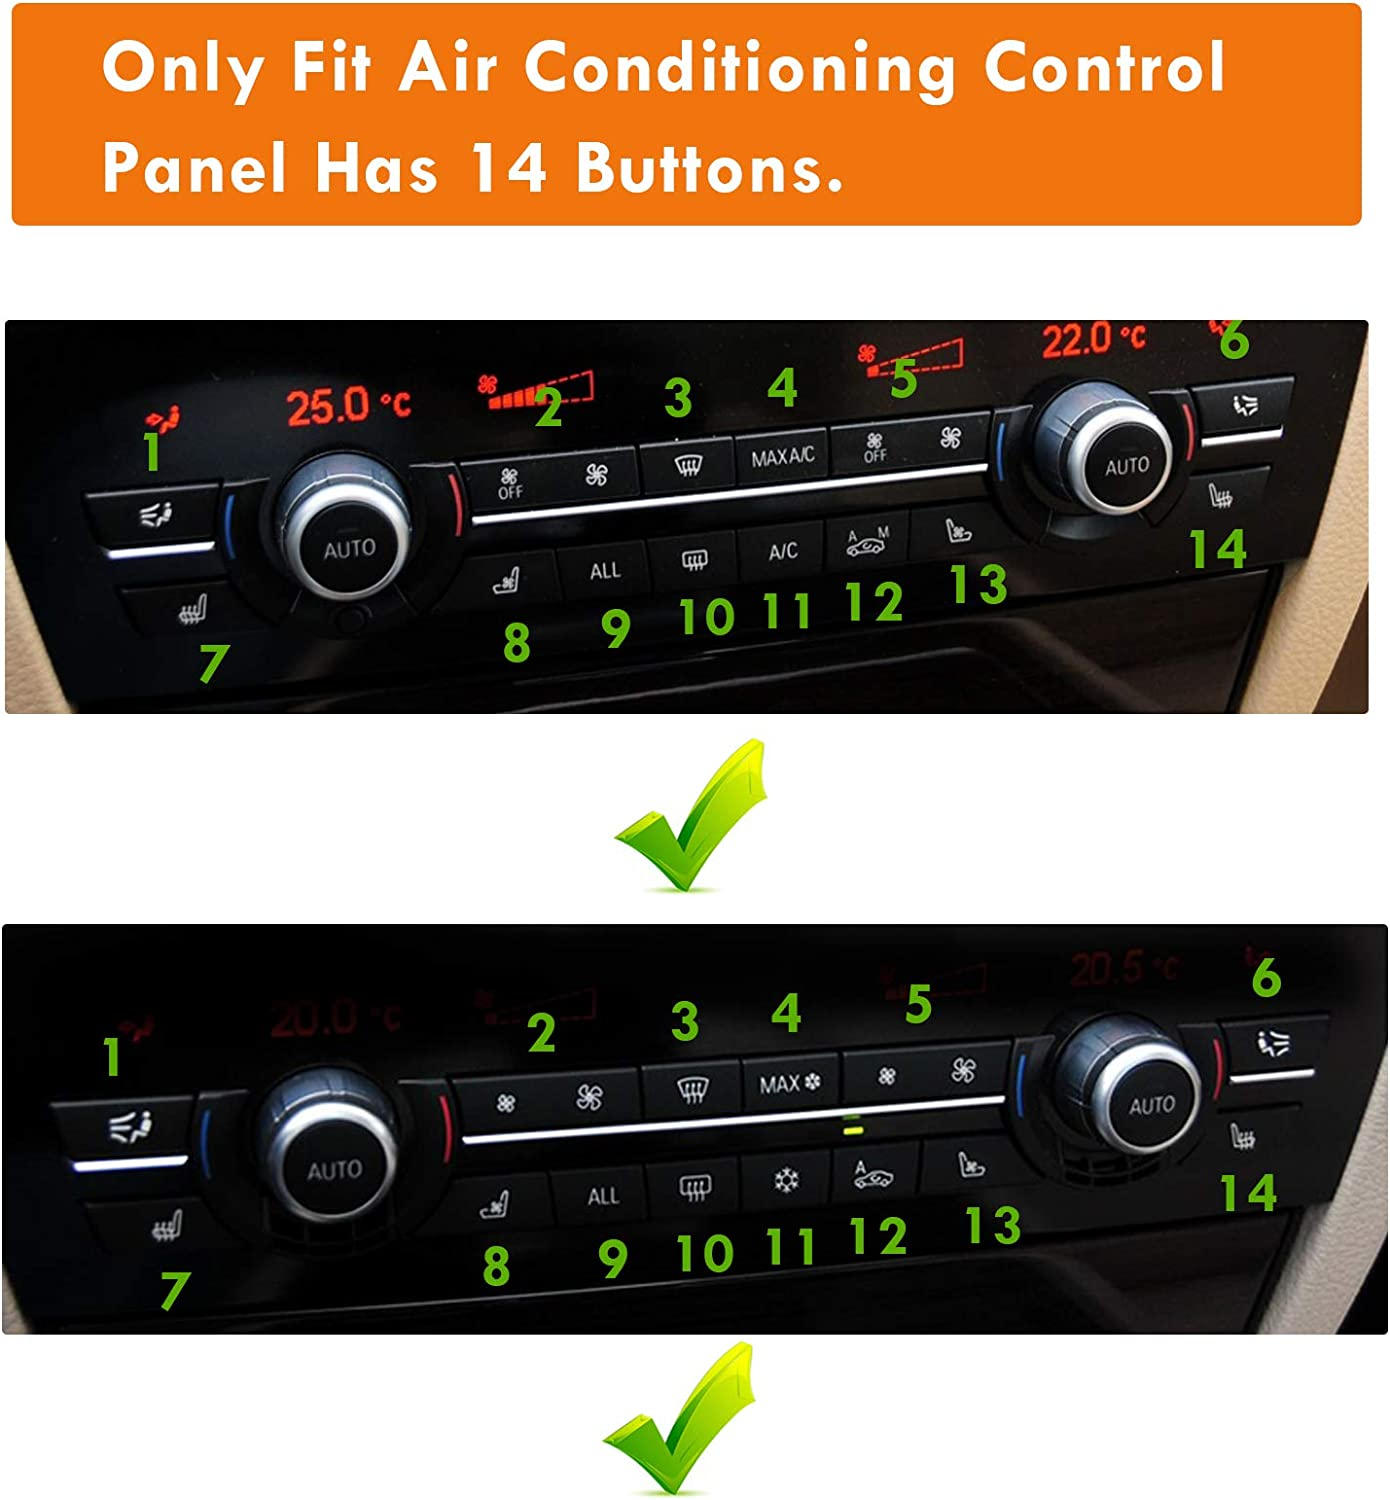 Moonlinks F10 Fan Speed Button Replacement air Conditioning Fan Switch Button Cap For BMW F07 F10 F11 F12 F13 F15 F16(2 Piece,14 Button Version)